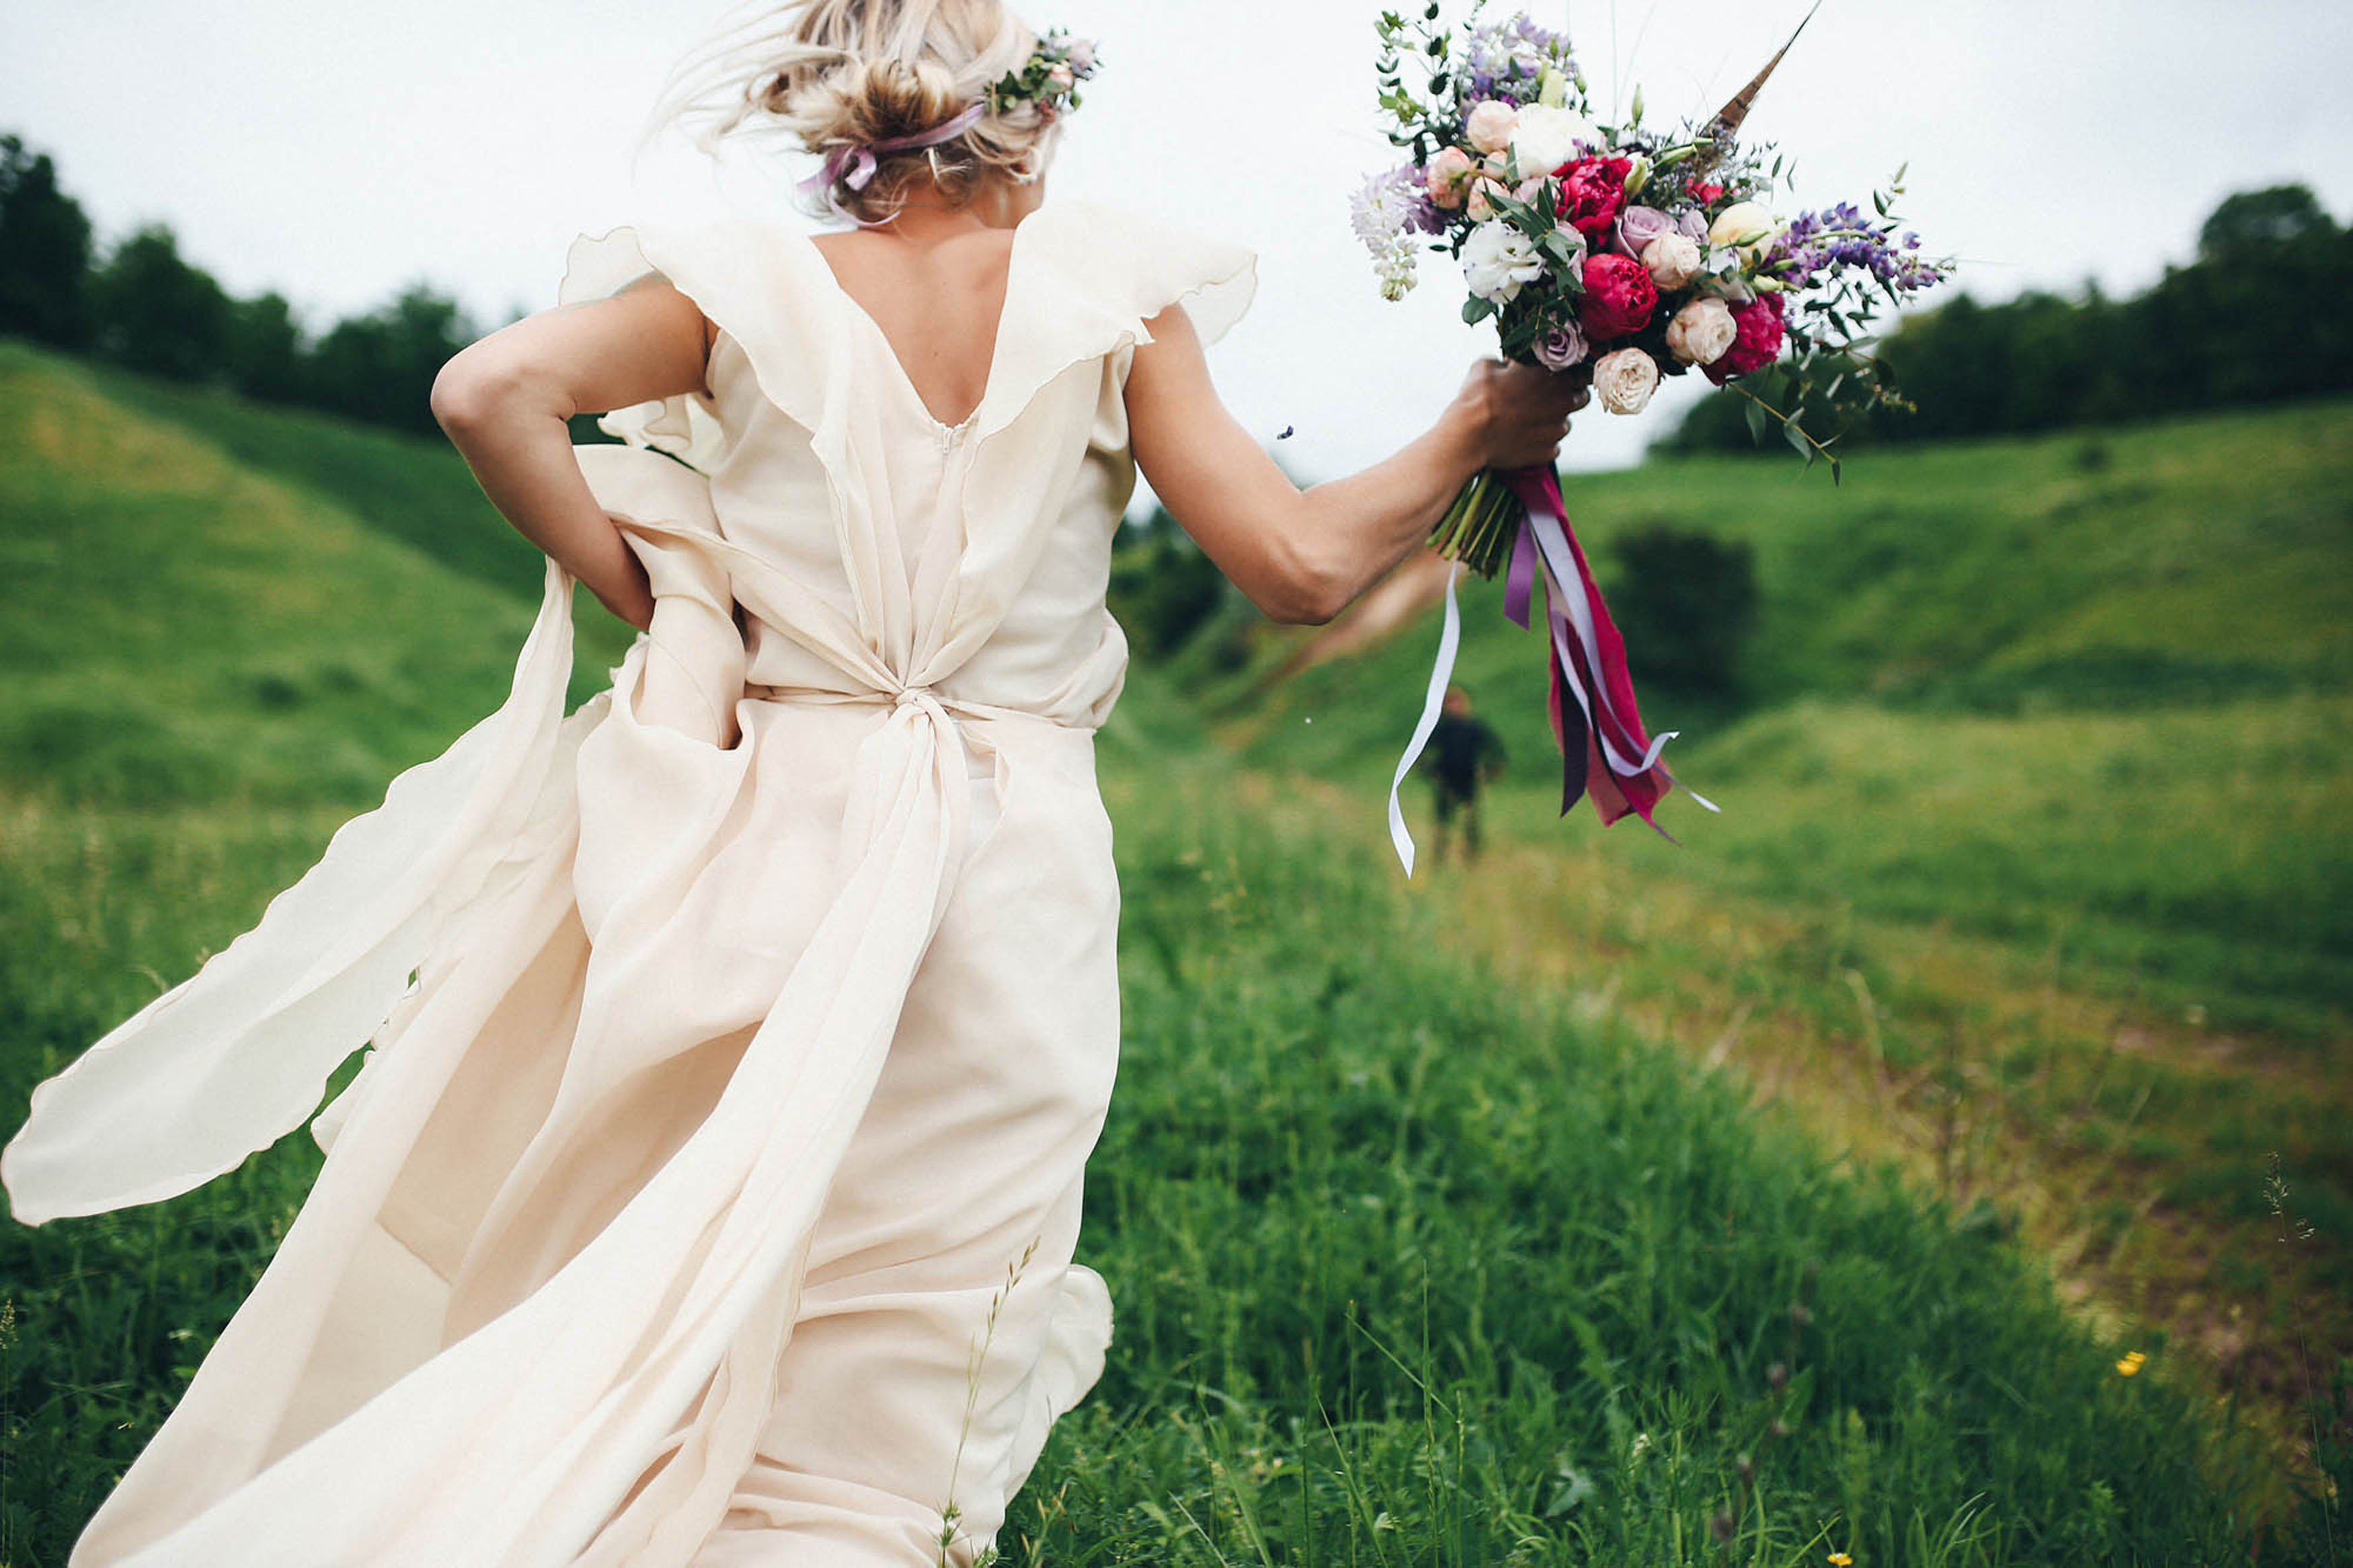 Bride running away from the camera with bouquet in hand